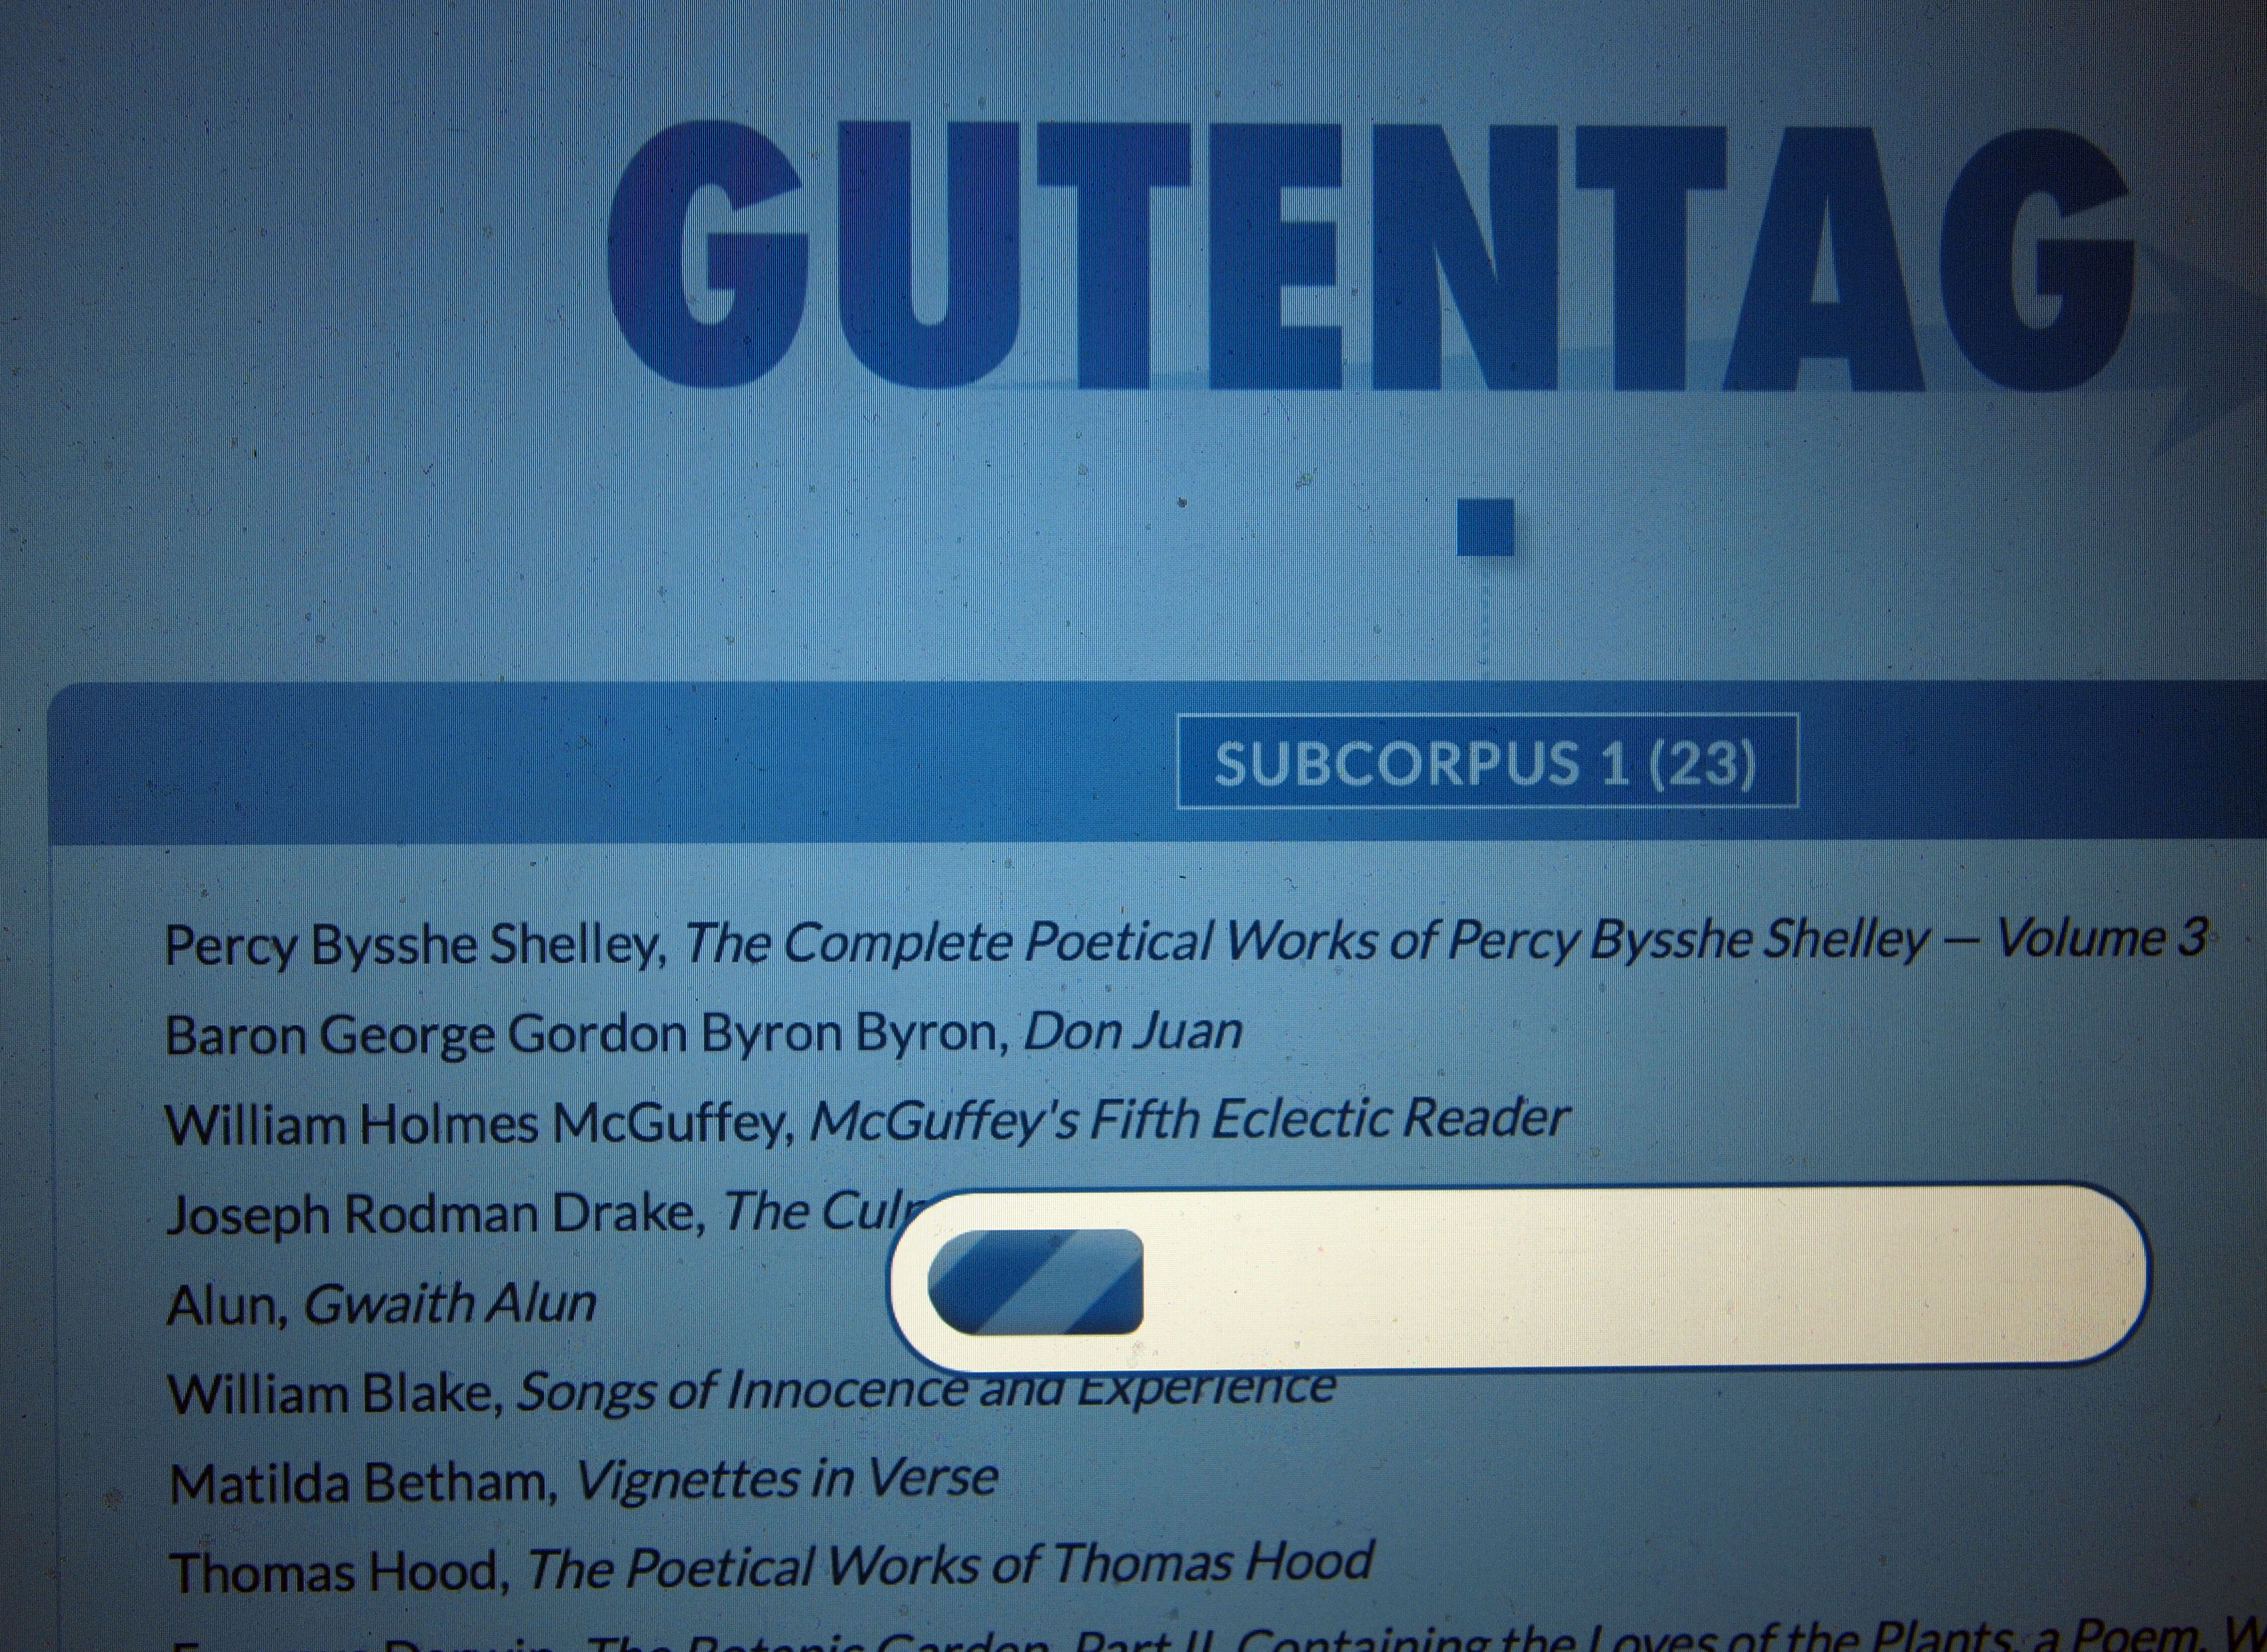 The GutenTag results page.